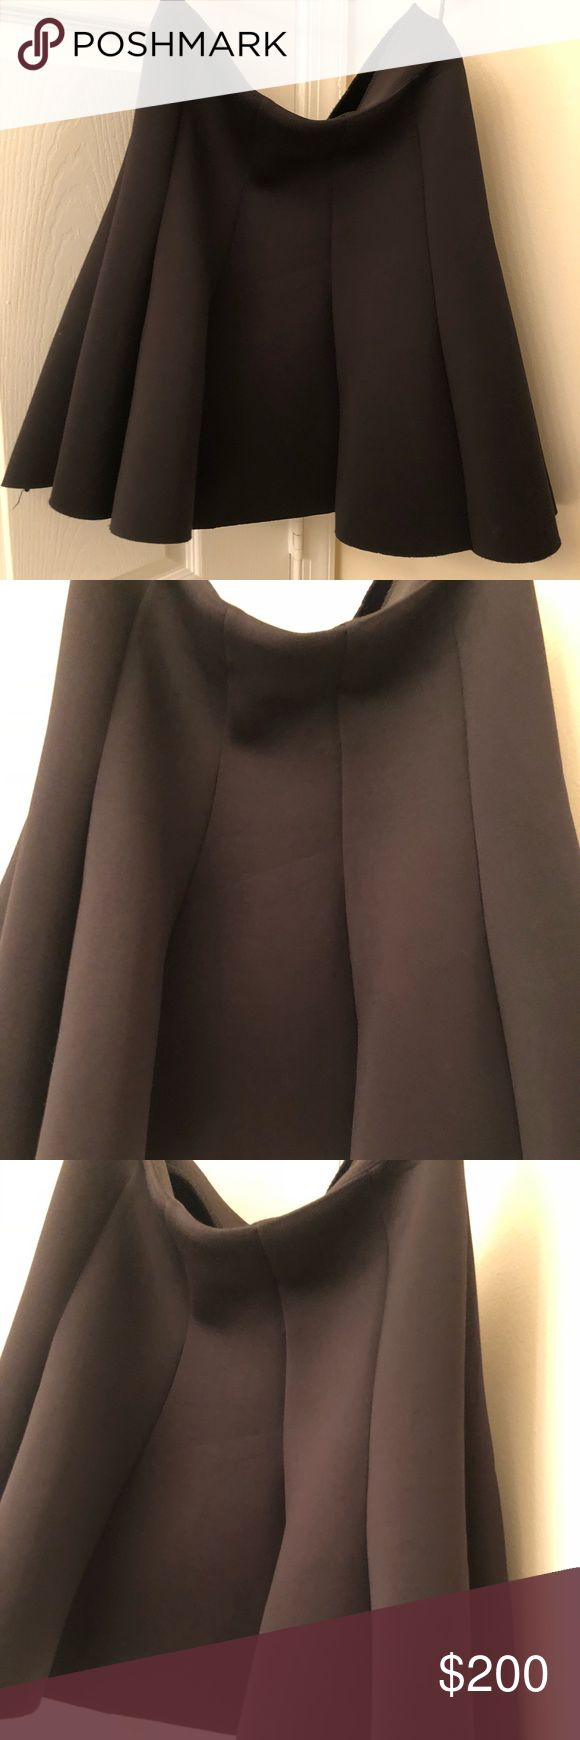 🛍️NEXT SKIRT BY Altura -Sz Med 🛍️NEXT SKIRT By Altura -Sz Med Material pure excellence. Will not (oftenly) find many others made like this. You'll have to see & feel. please contact me of you would like to purchase from the Next Line I'm putting up. Ty.  New, diff than boutique items brand new, must know what you like & want b4 purchase please. Ty for understanding, I'll put 1 next item up per week. Each out doing the previous. 🥀 Altura Skirts Mini